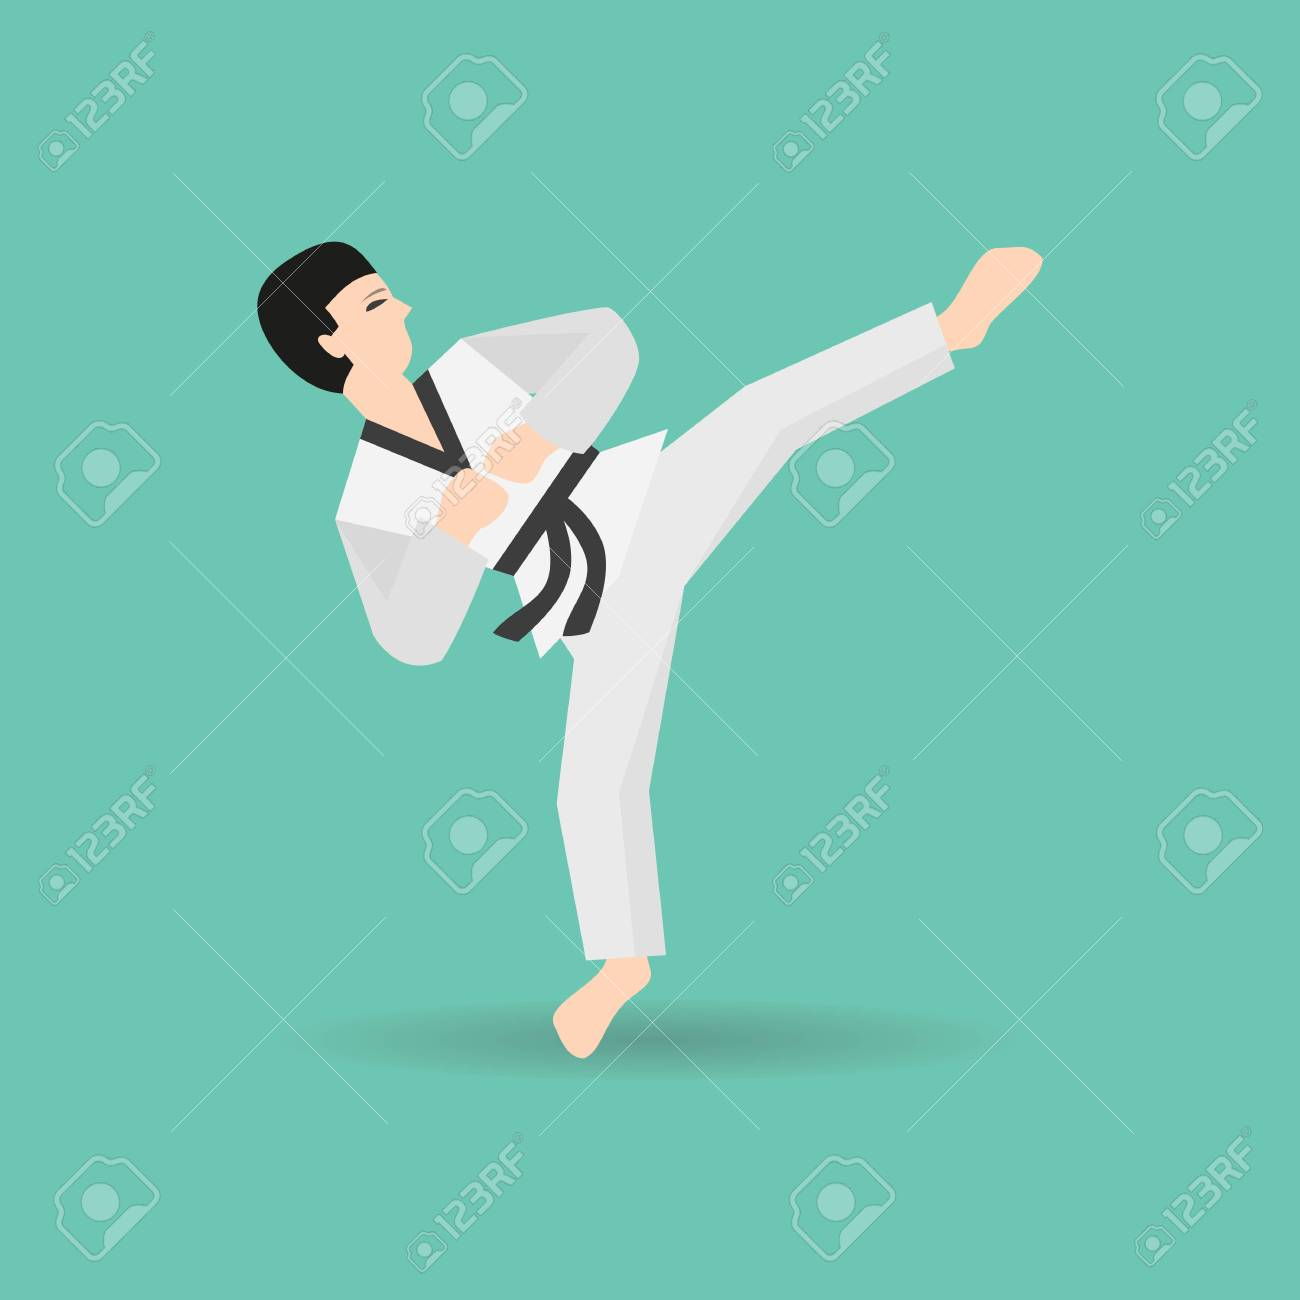 Karate Icon On The Green Background Vector Illustration Royalty